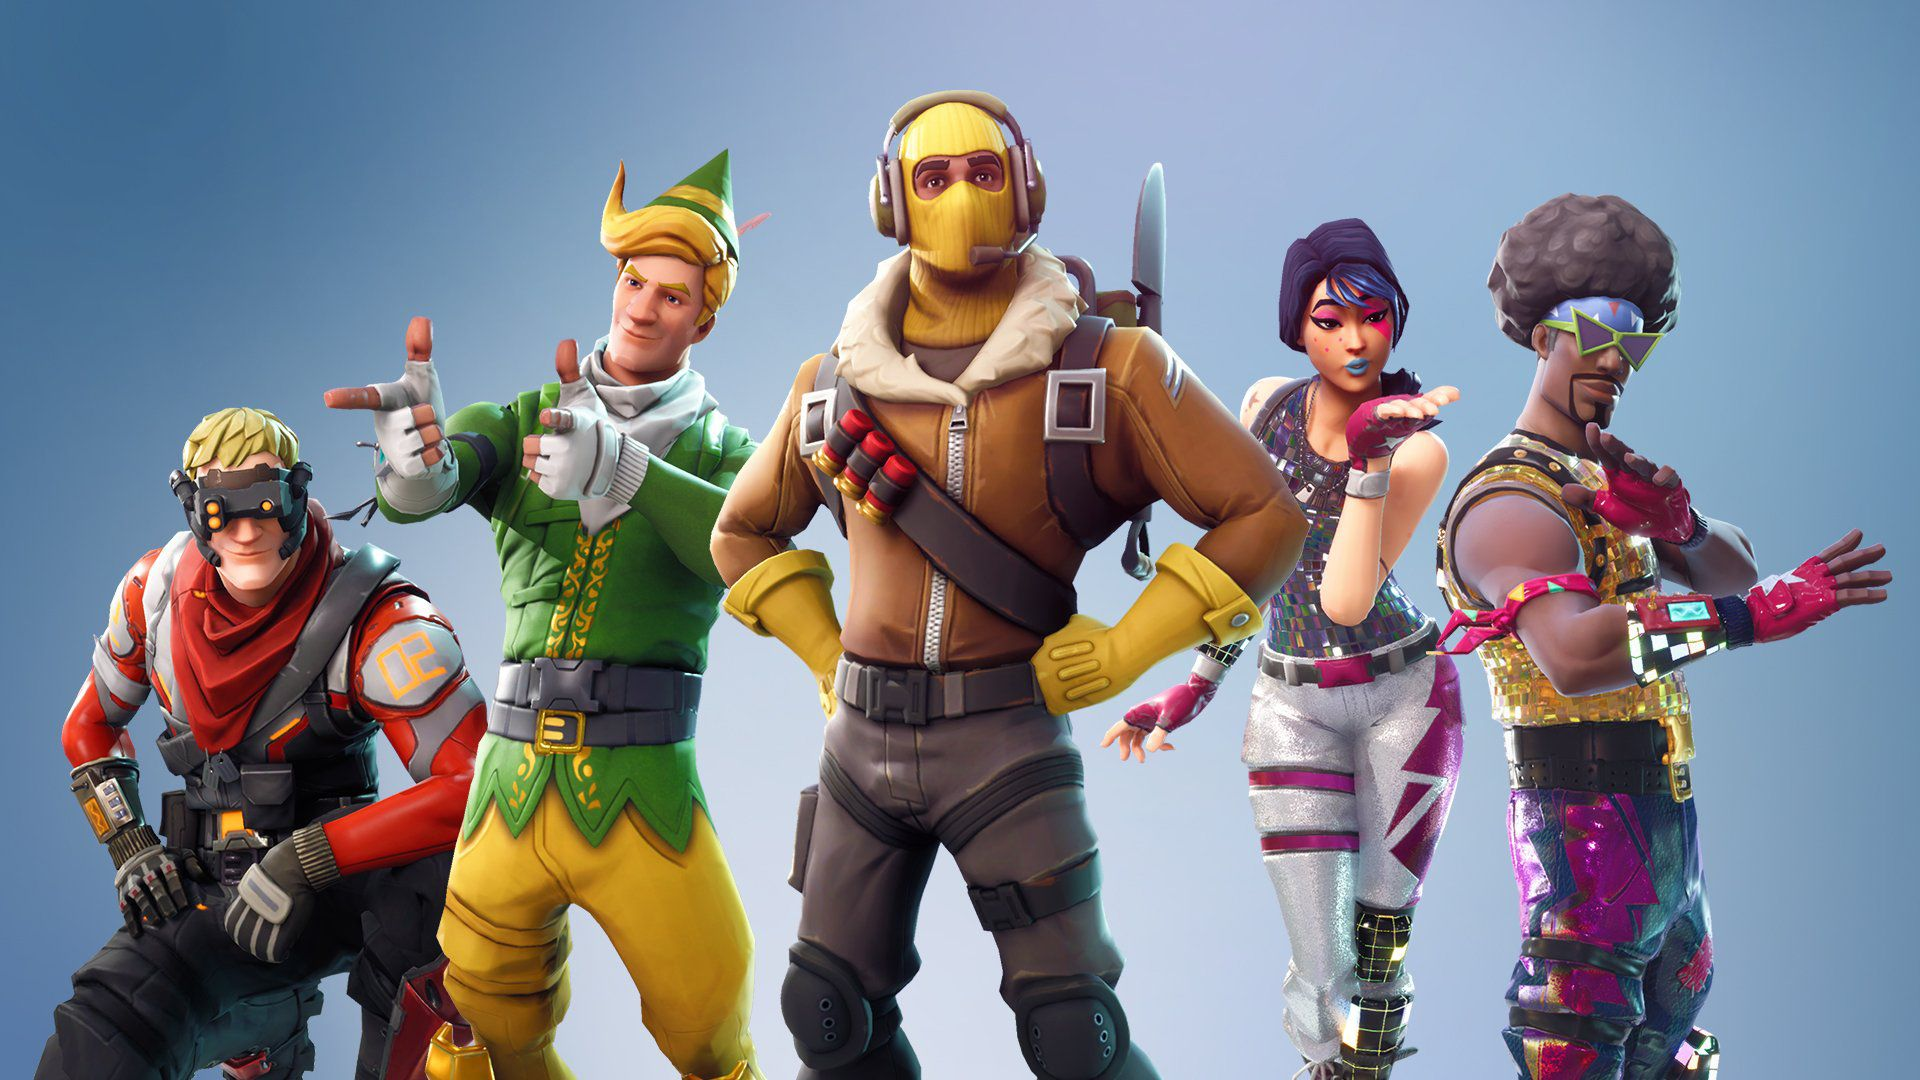 Video Game Fortnite Hd Group Wallpaper Best Gaming Wallpapers